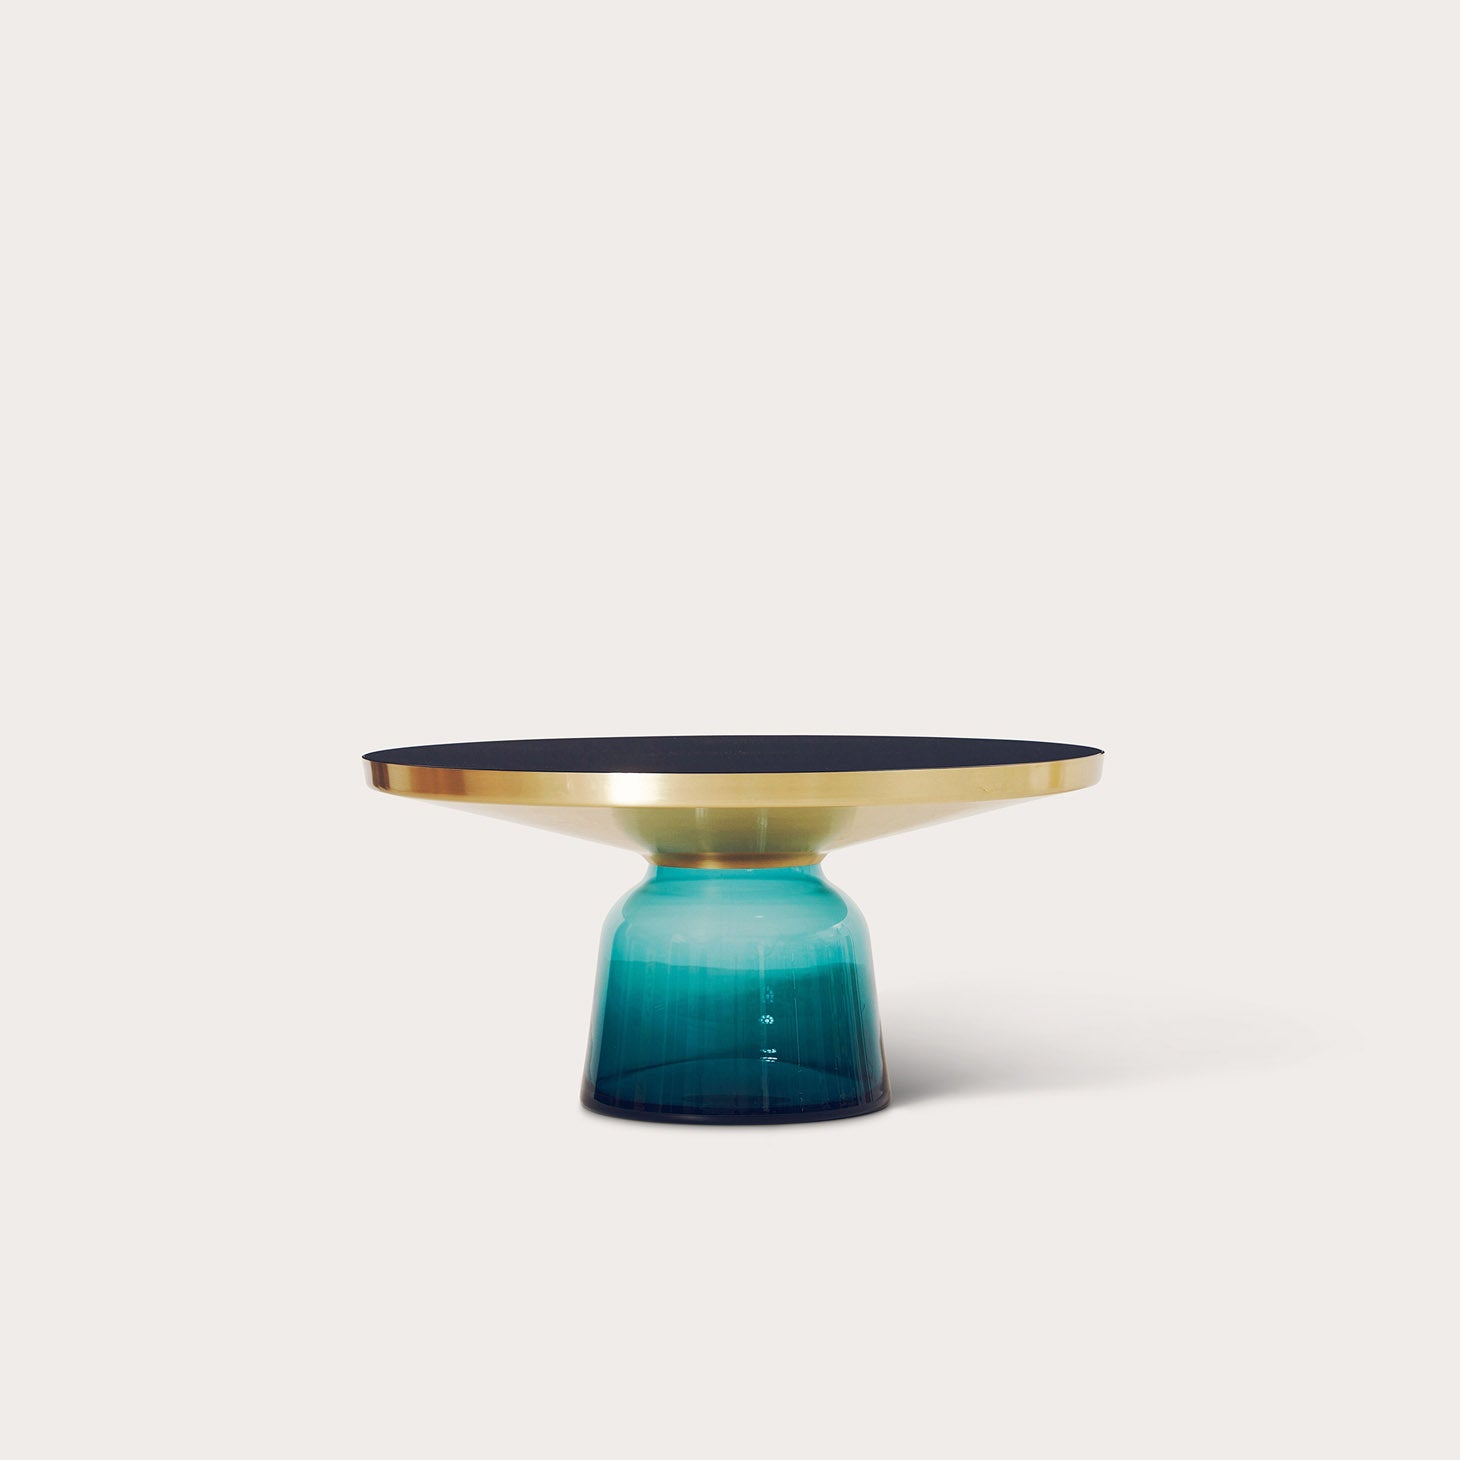 Bell Table Tables Sebastian Herkner Designer Furniture Sku: 001-230-10184